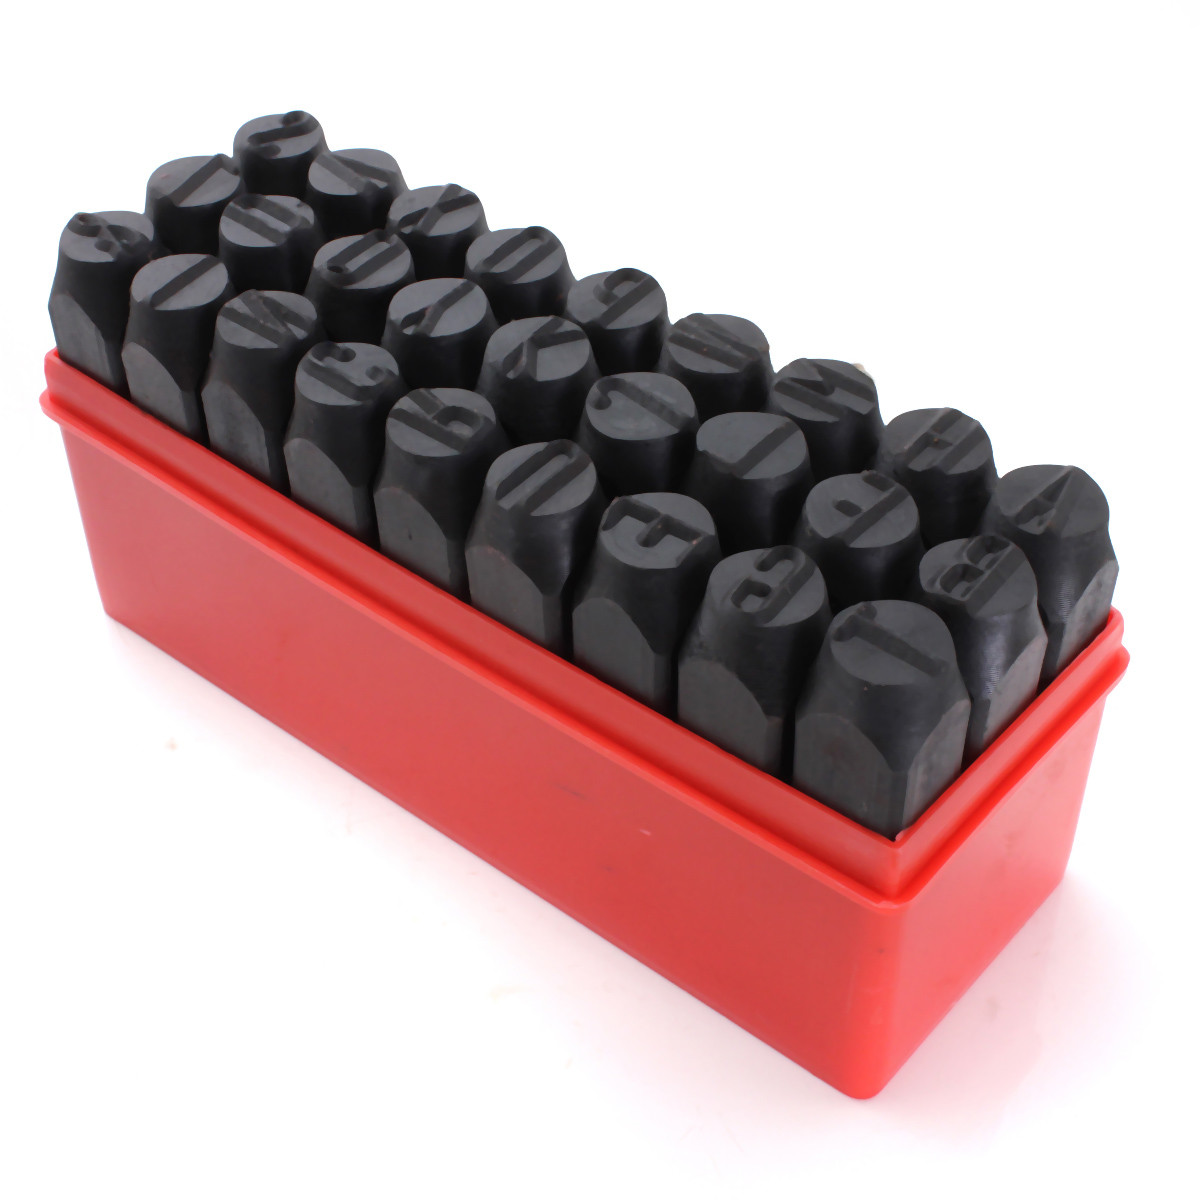 stamps letters alphabet set punch steel metal tool case craft hot 4mmchina mainland